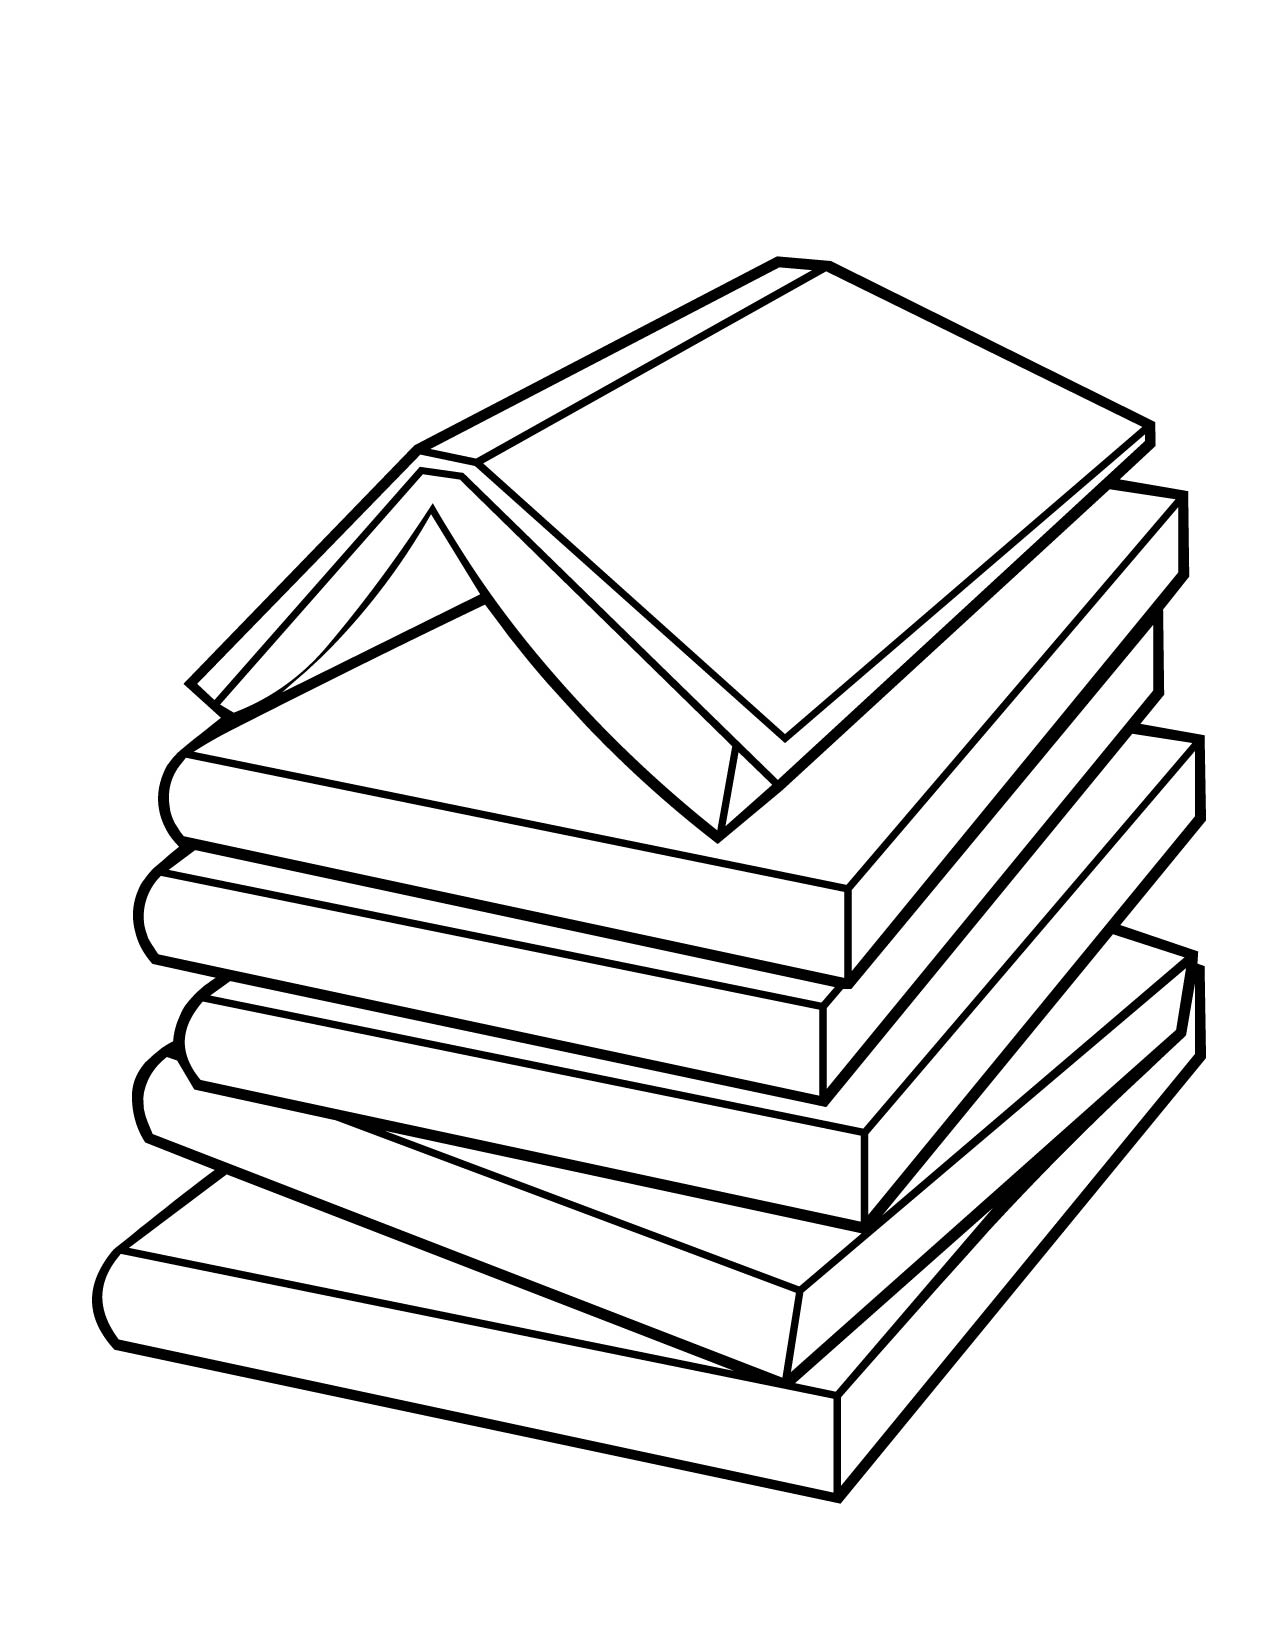 Coloring Book In : Book coloring pages to download and print for free